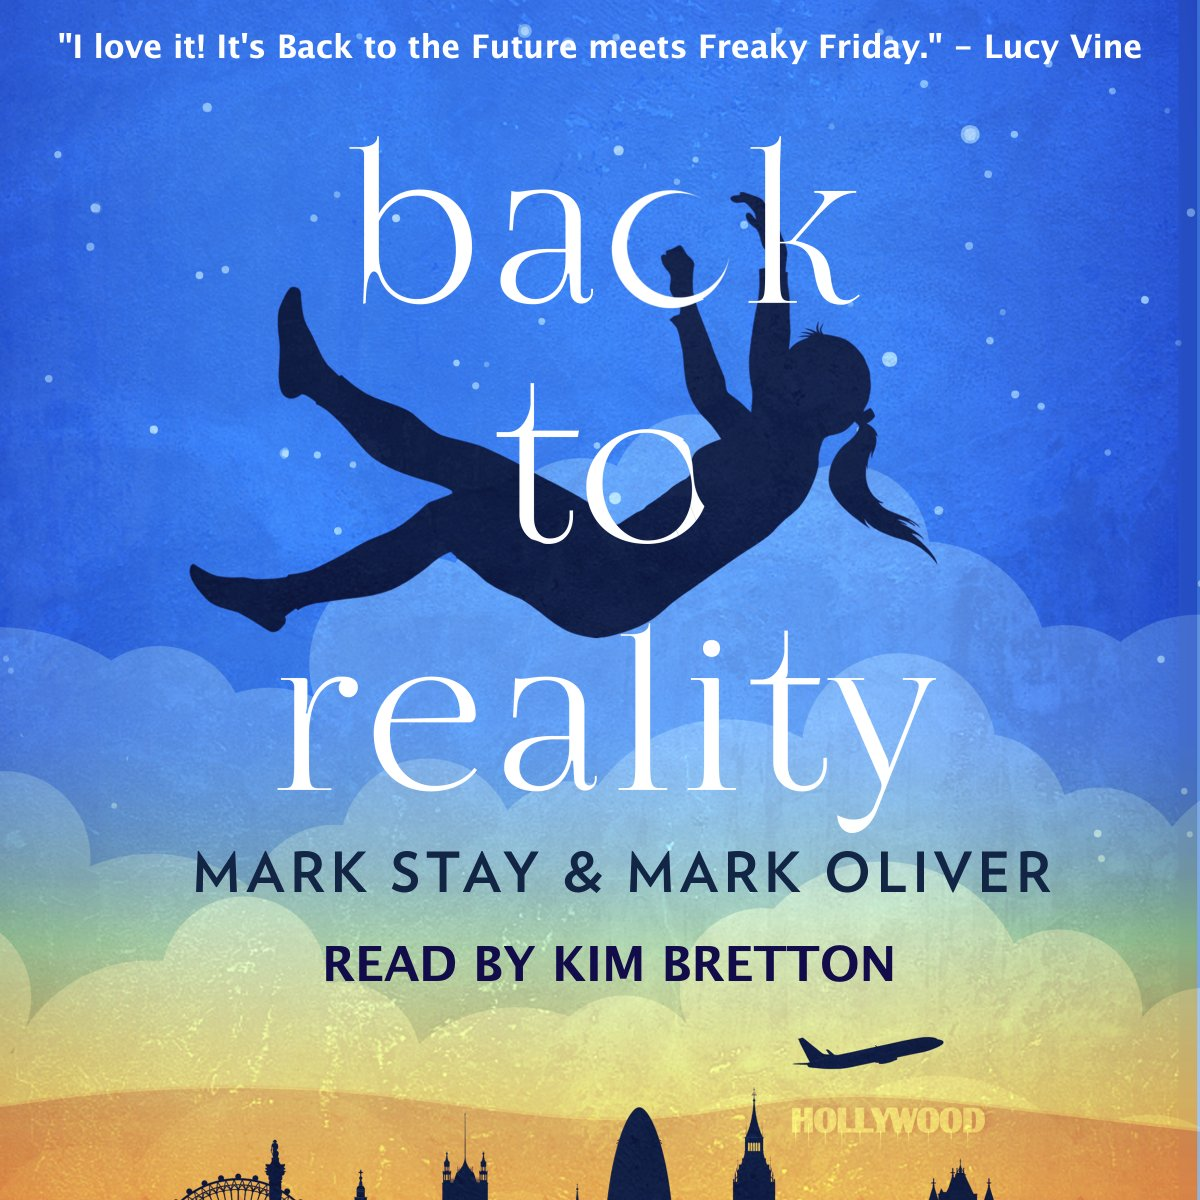 """""""The 90s brought back to life in full colour… a great mix of Bridget Jones and Freaky Friday."""" @ShazzieRimmel  Get BACK TO REALITY on audio read by @nashvegaskim  Audible  : https://audible.com/pd/Back-to-Reality-A-Novel-Audiobook/B07YB4J1TH…  Audible  : https://audible.co.uk/pd/Back-to-Reality-A-Novel-Audiobook/B07YB5HNRC…  #audiobookspic.twitter.com/Zy6Vuidhtm"""